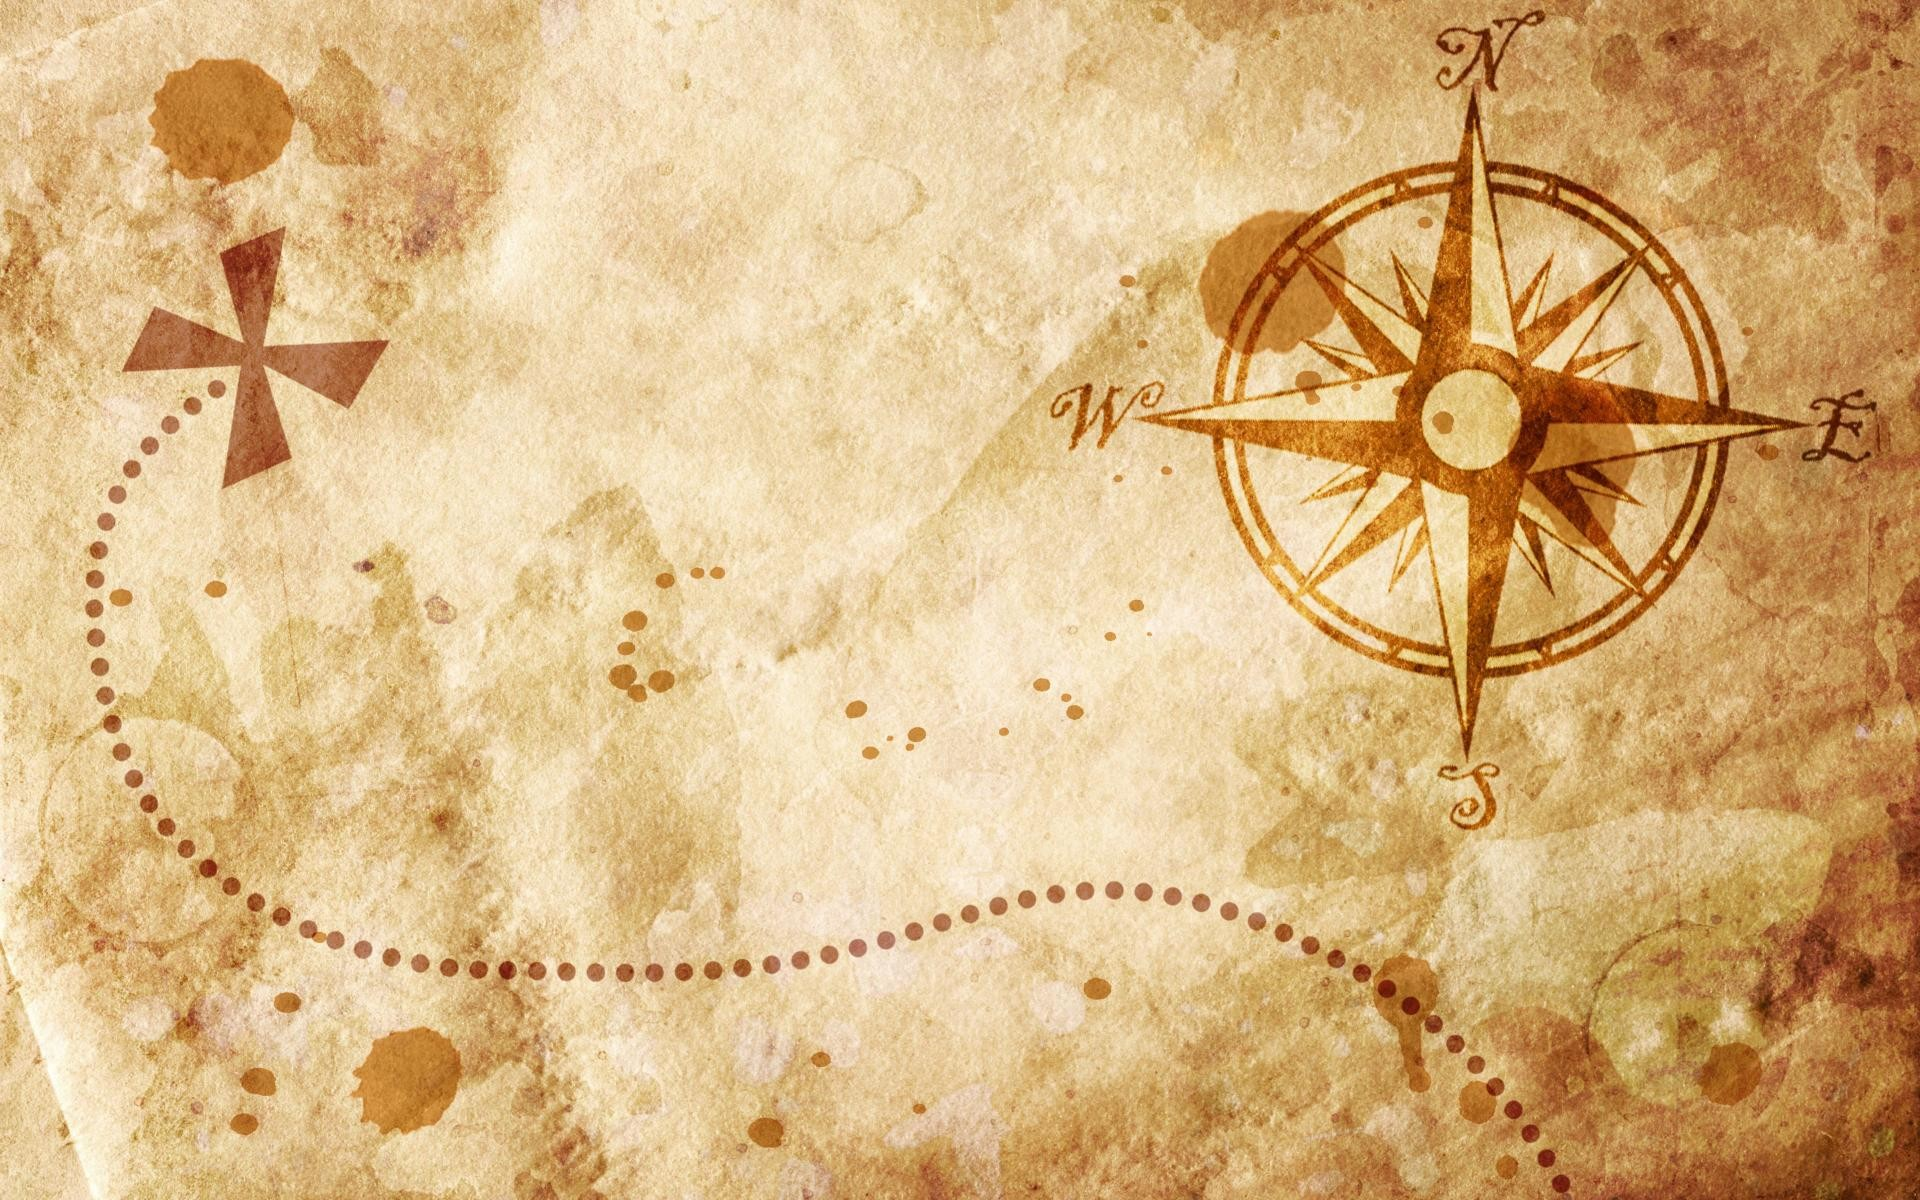 Res: 1920x1200, old map with a compass on it wallpapers hd hd wallpapers high definition  amazing cool desktop wallpapers for windows apple mac download 1920×1200  Wallpaper ...